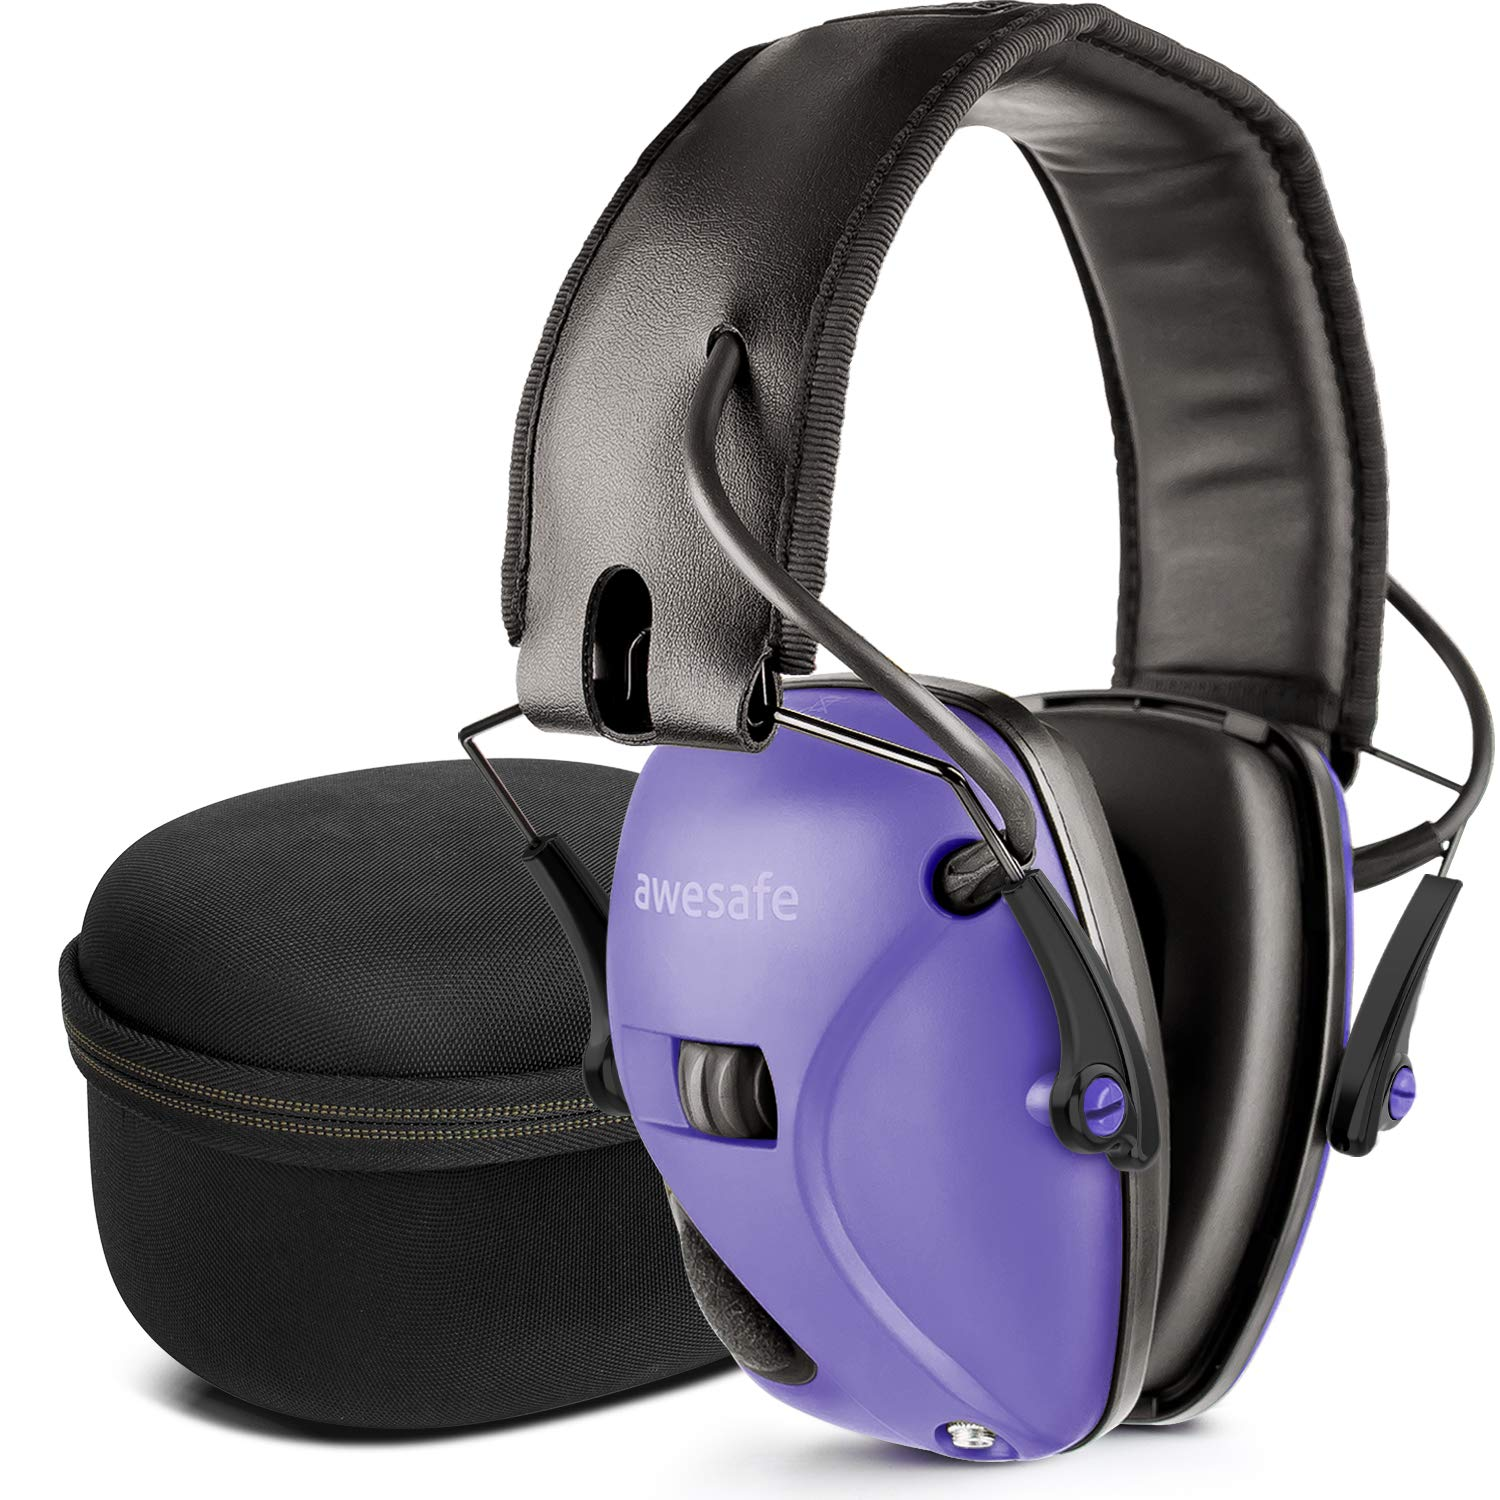 awesafe Electronic Shooting Earmuff, Noise Reduction Sound Amplification Electronic Safety Ear Muffs and Storage Case, Purple ...